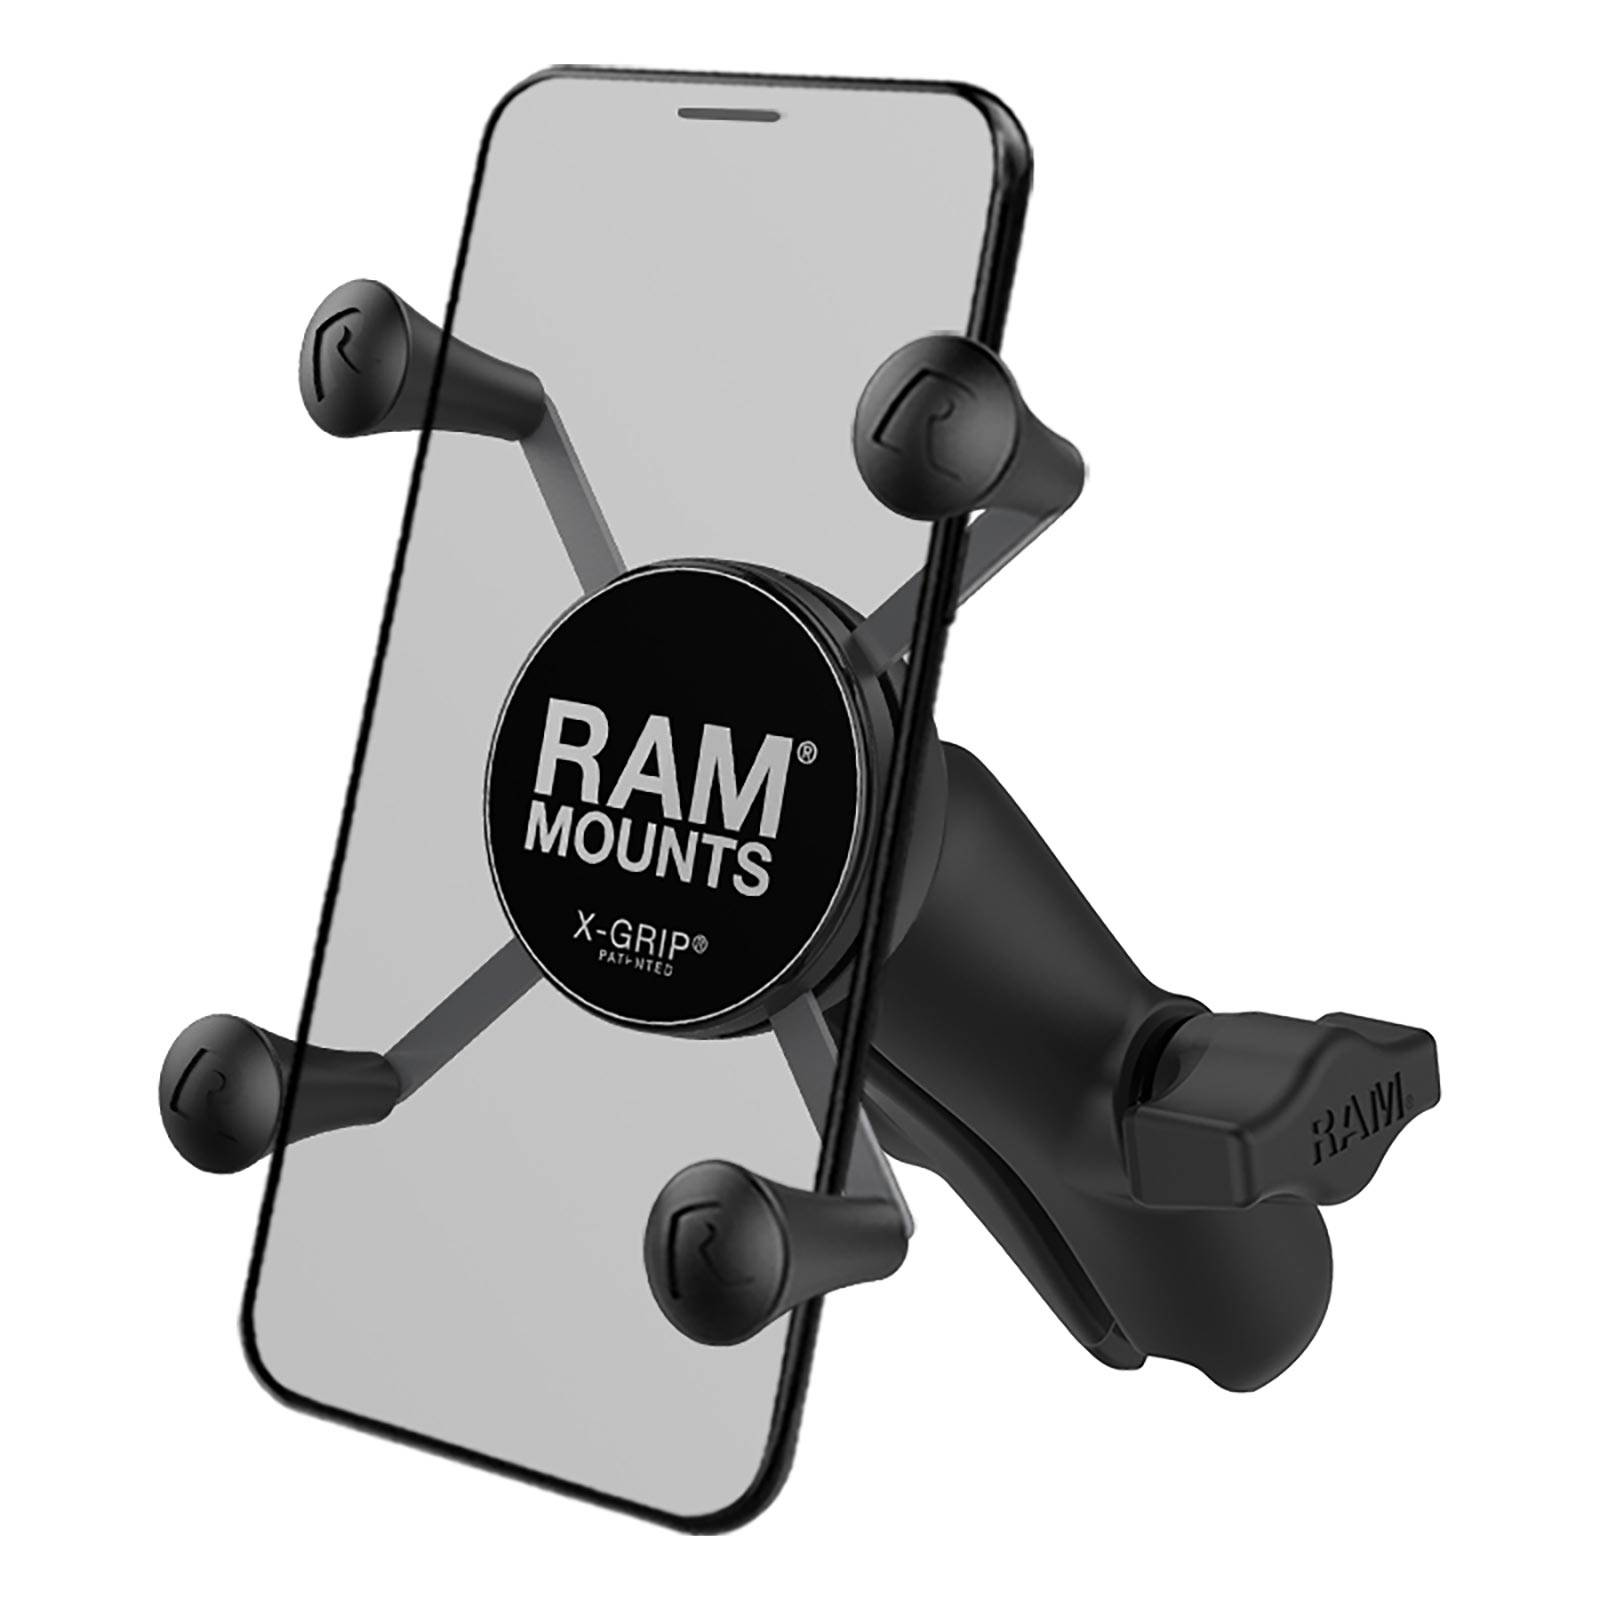 Hobie Ram X-Grip Universal Phone Holder with Ball